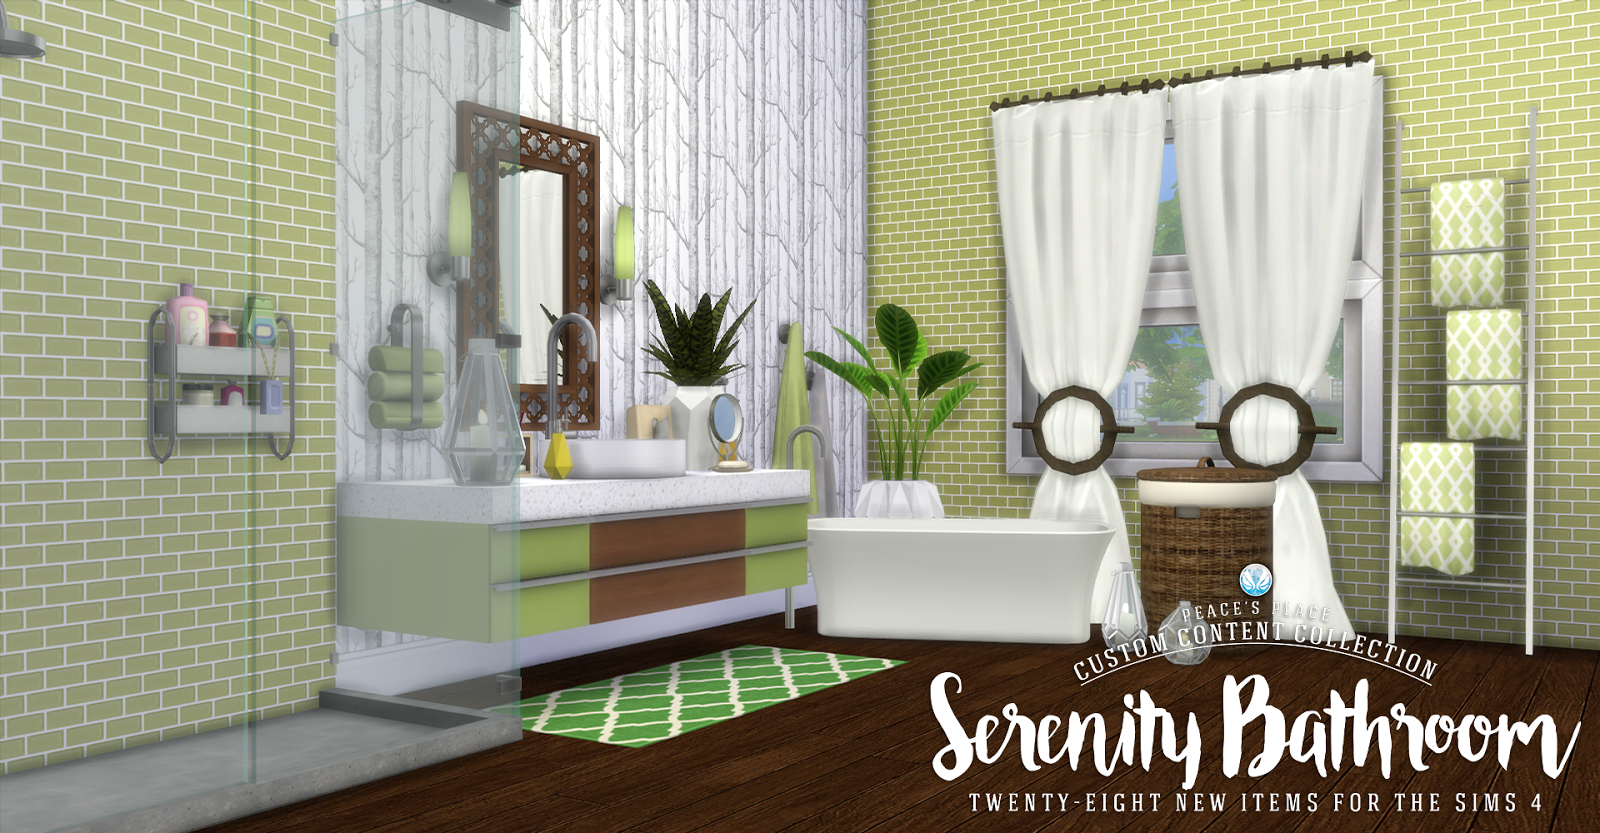 453k members in the thesims community. My Sims 4 Blog: Updated - Serenity Bathroom Set - 28 New ...